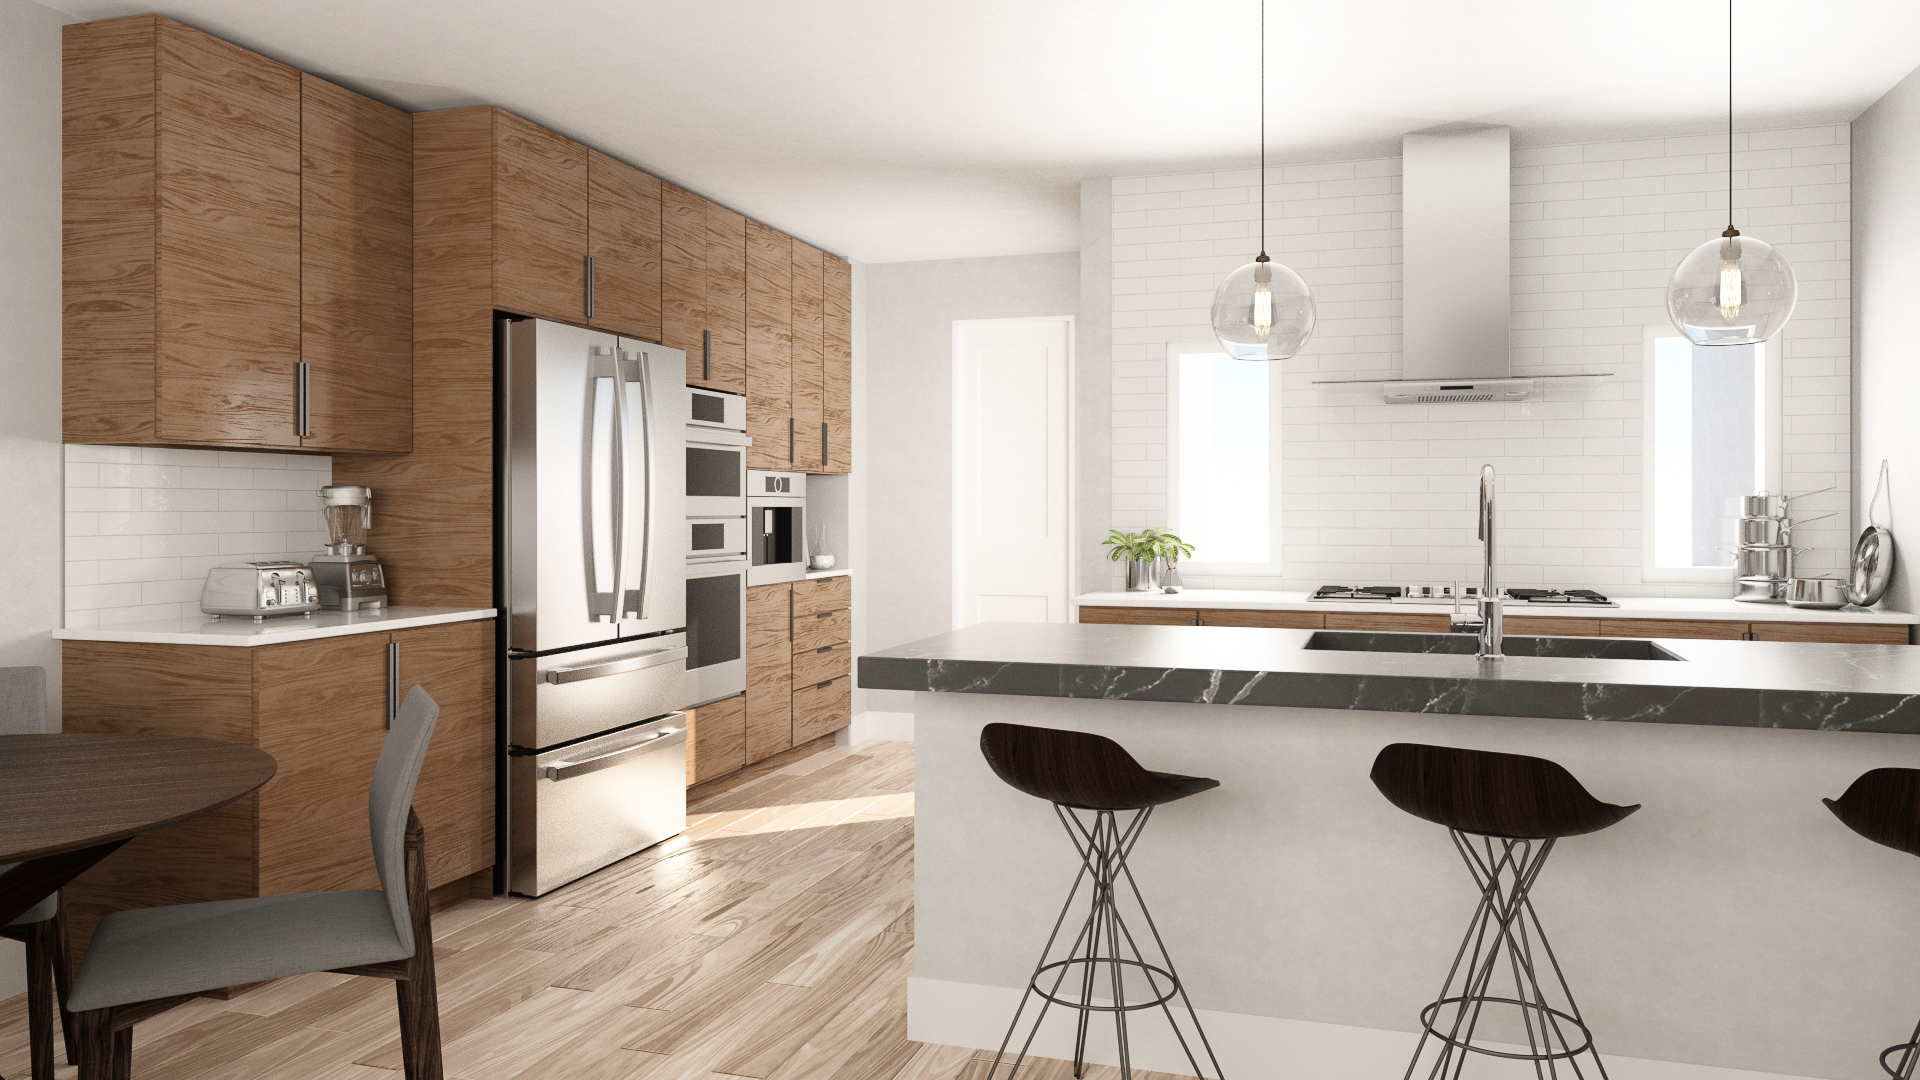 6 Reasons Why Using Rendered Images to Sell Pre-Construction Is a Win